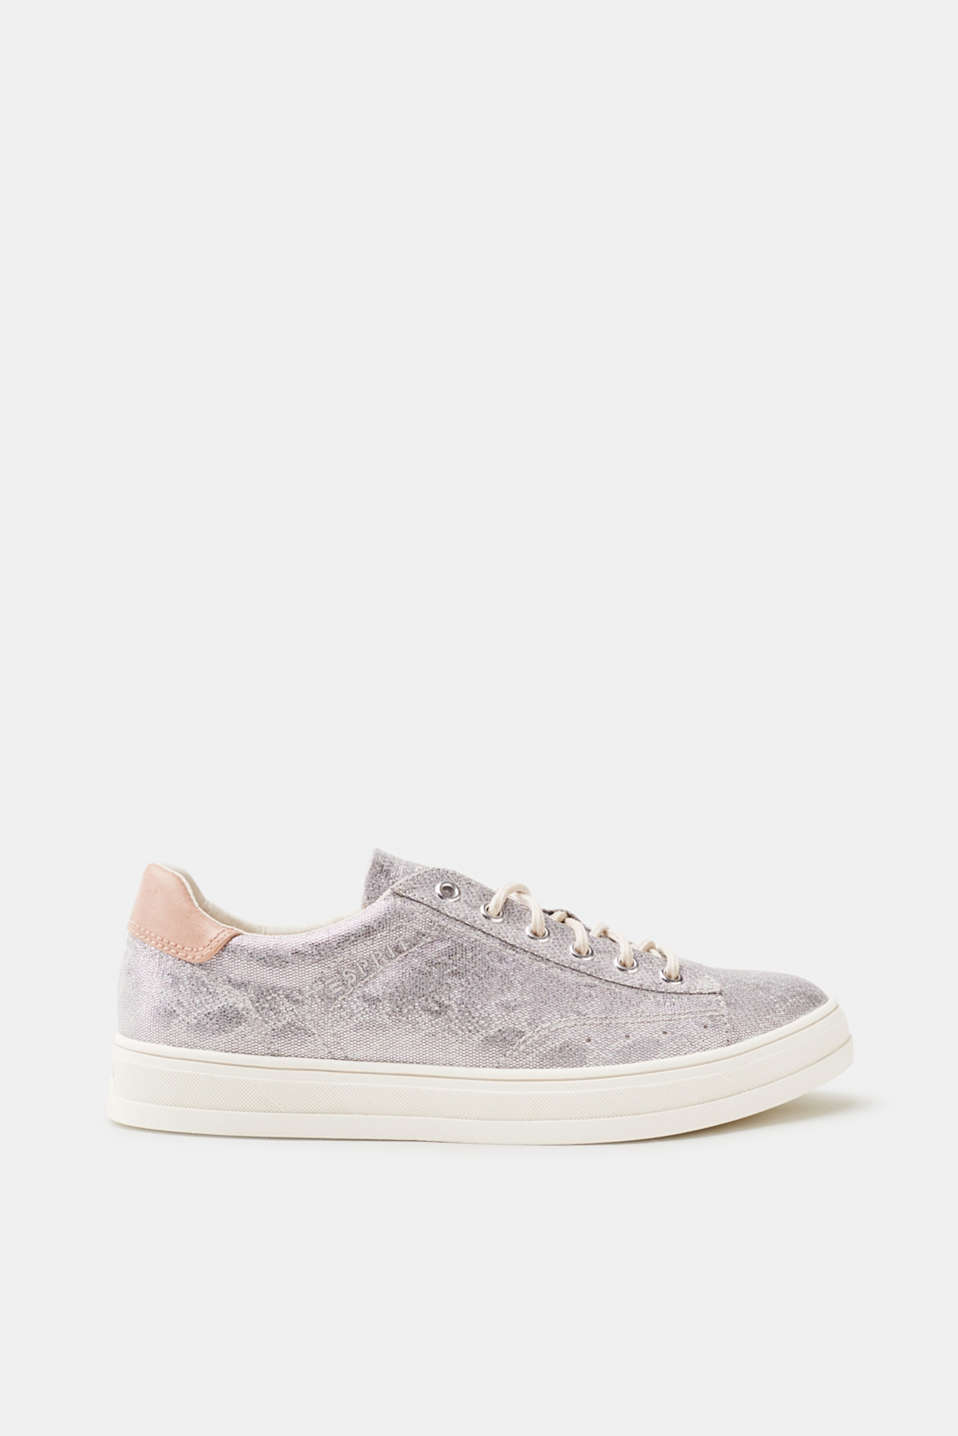 Esprit - Trendy trainers in a cool metallic finish